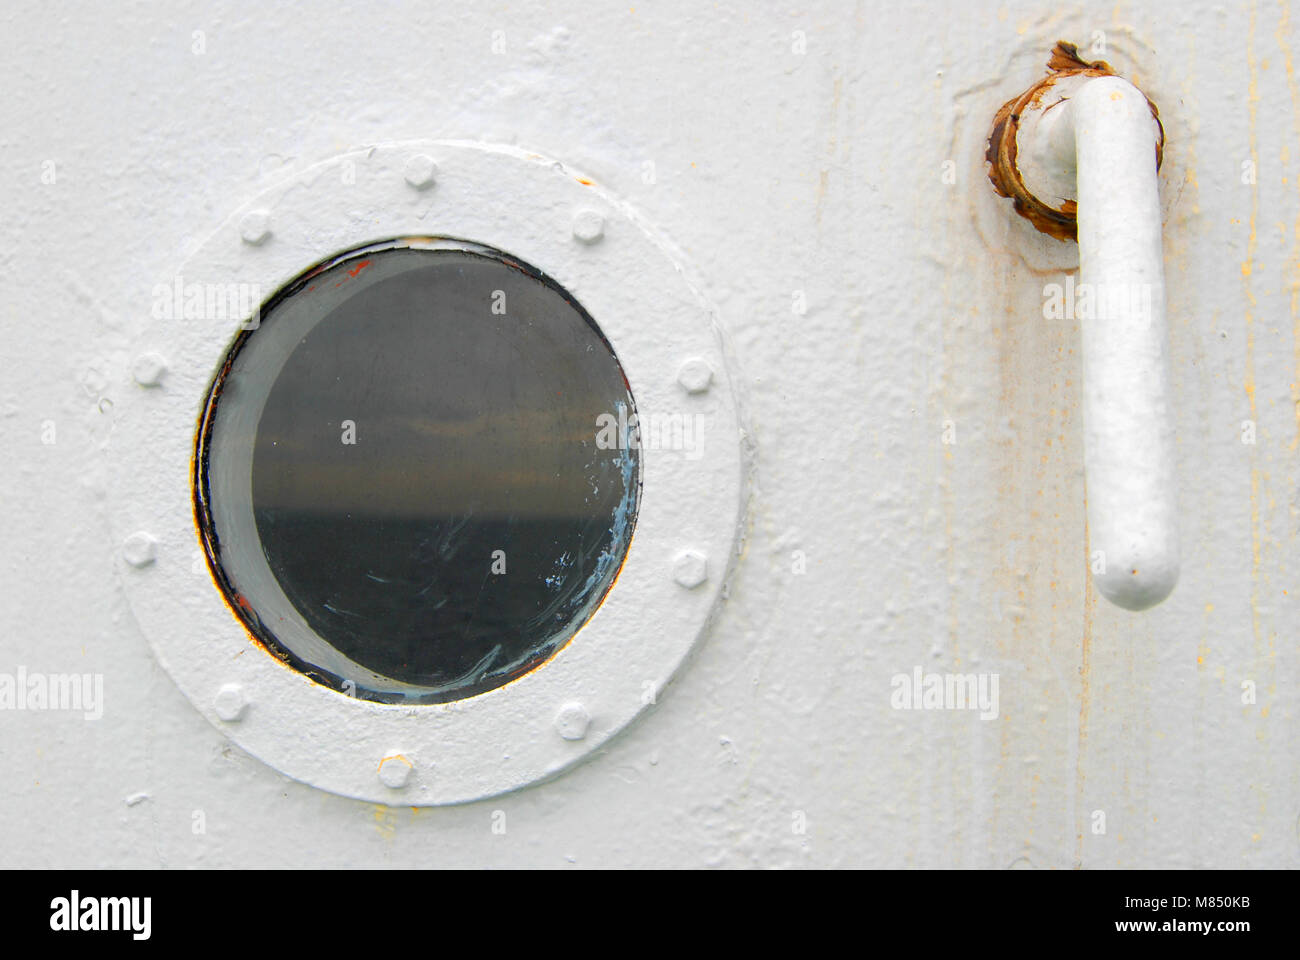 Porthole On A Ship With A Door Handle. Weathered And Rust